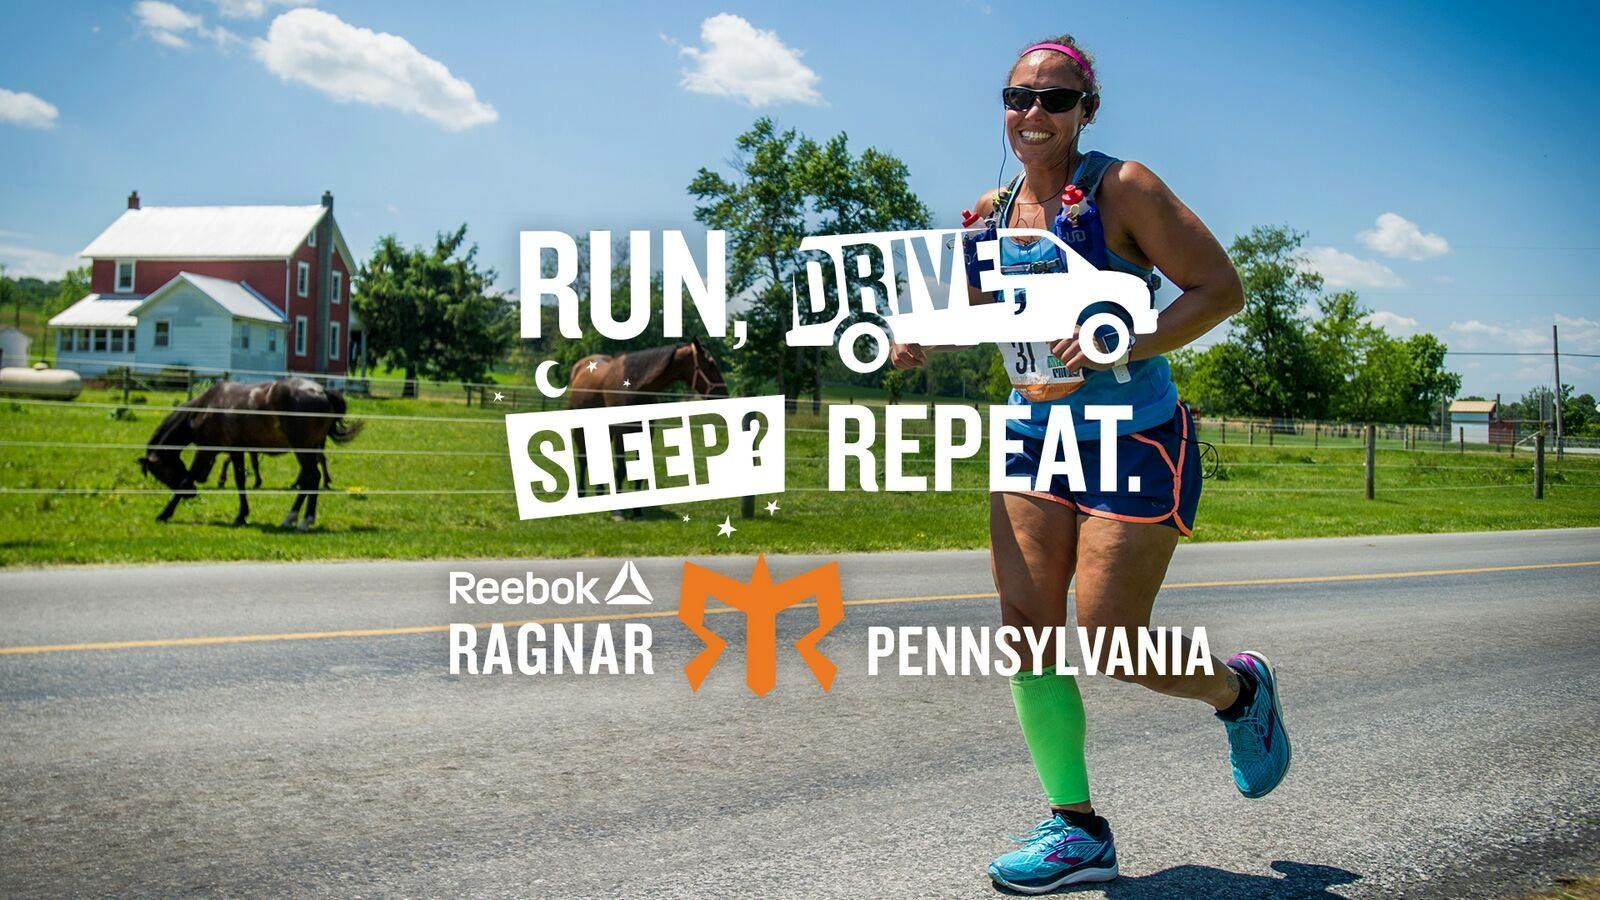 PA Ragnar 101 Session